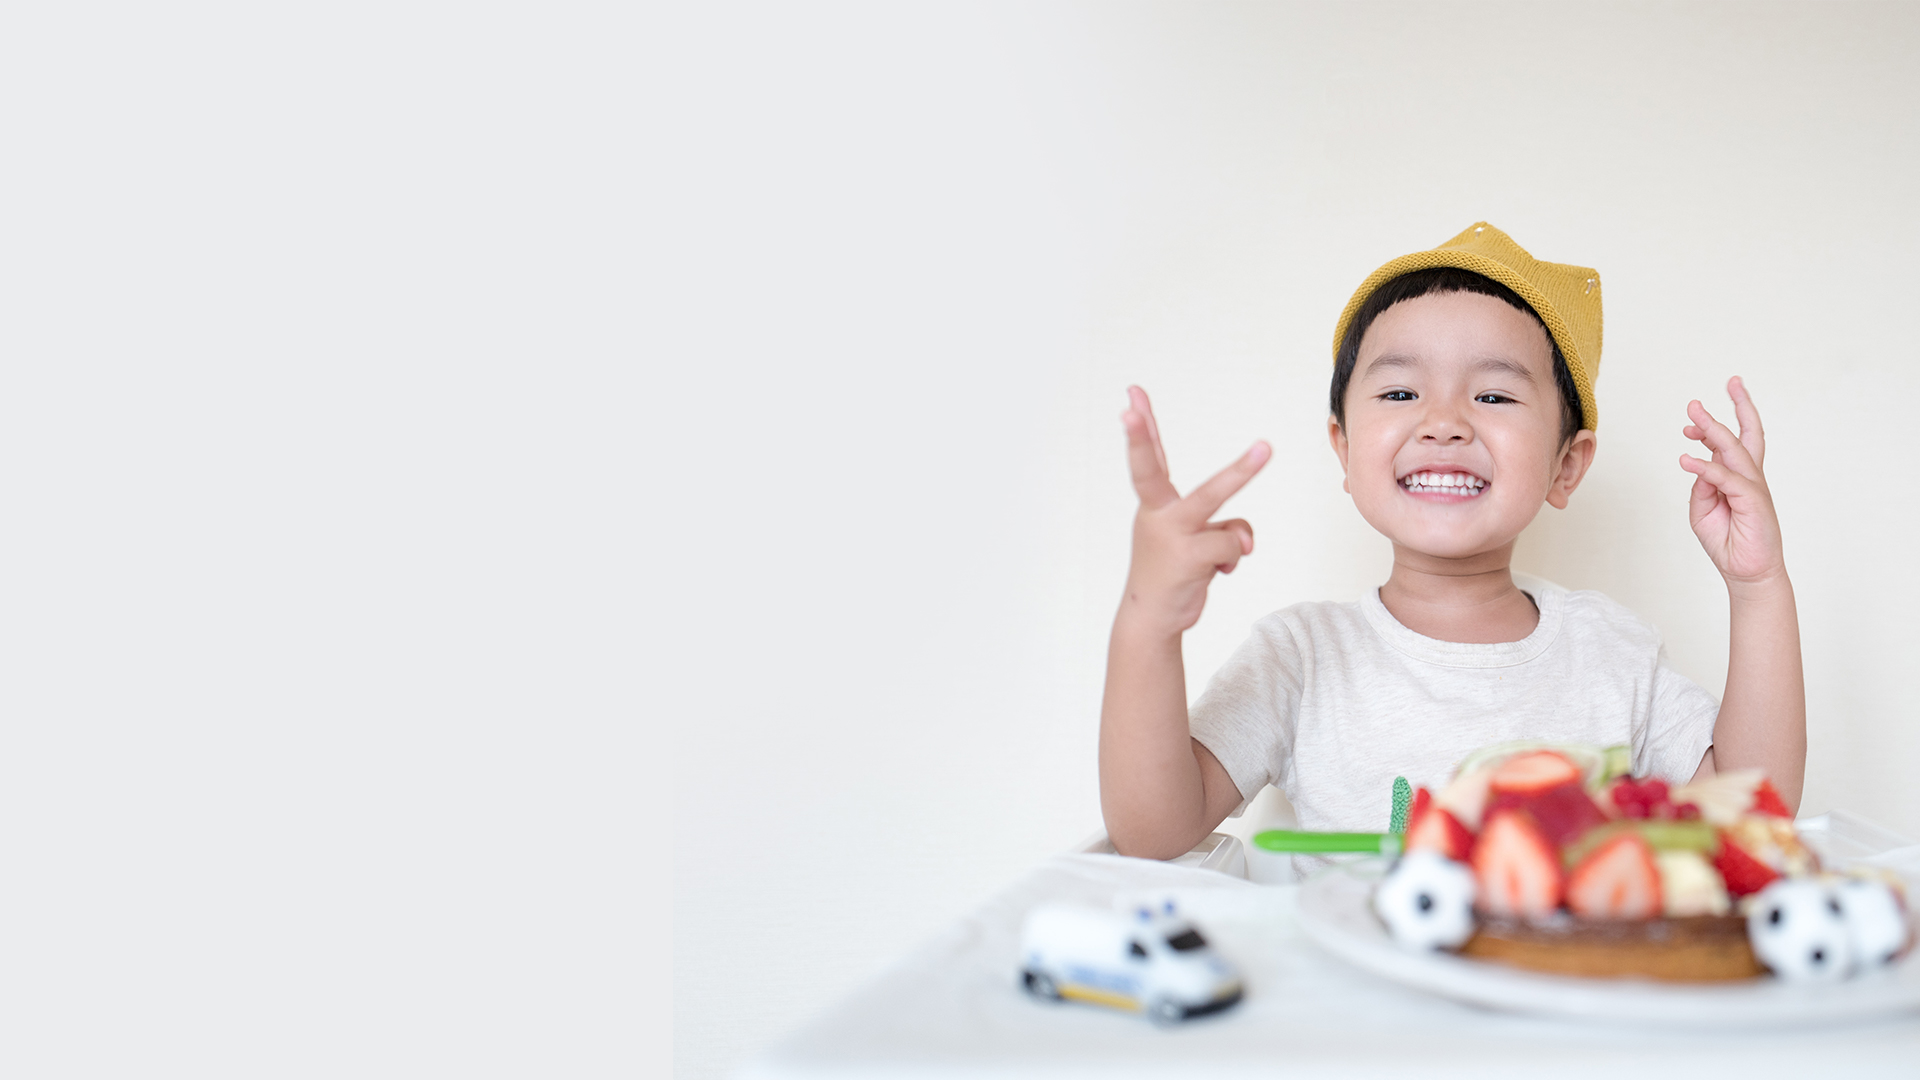 Child with cake and toys smiling.